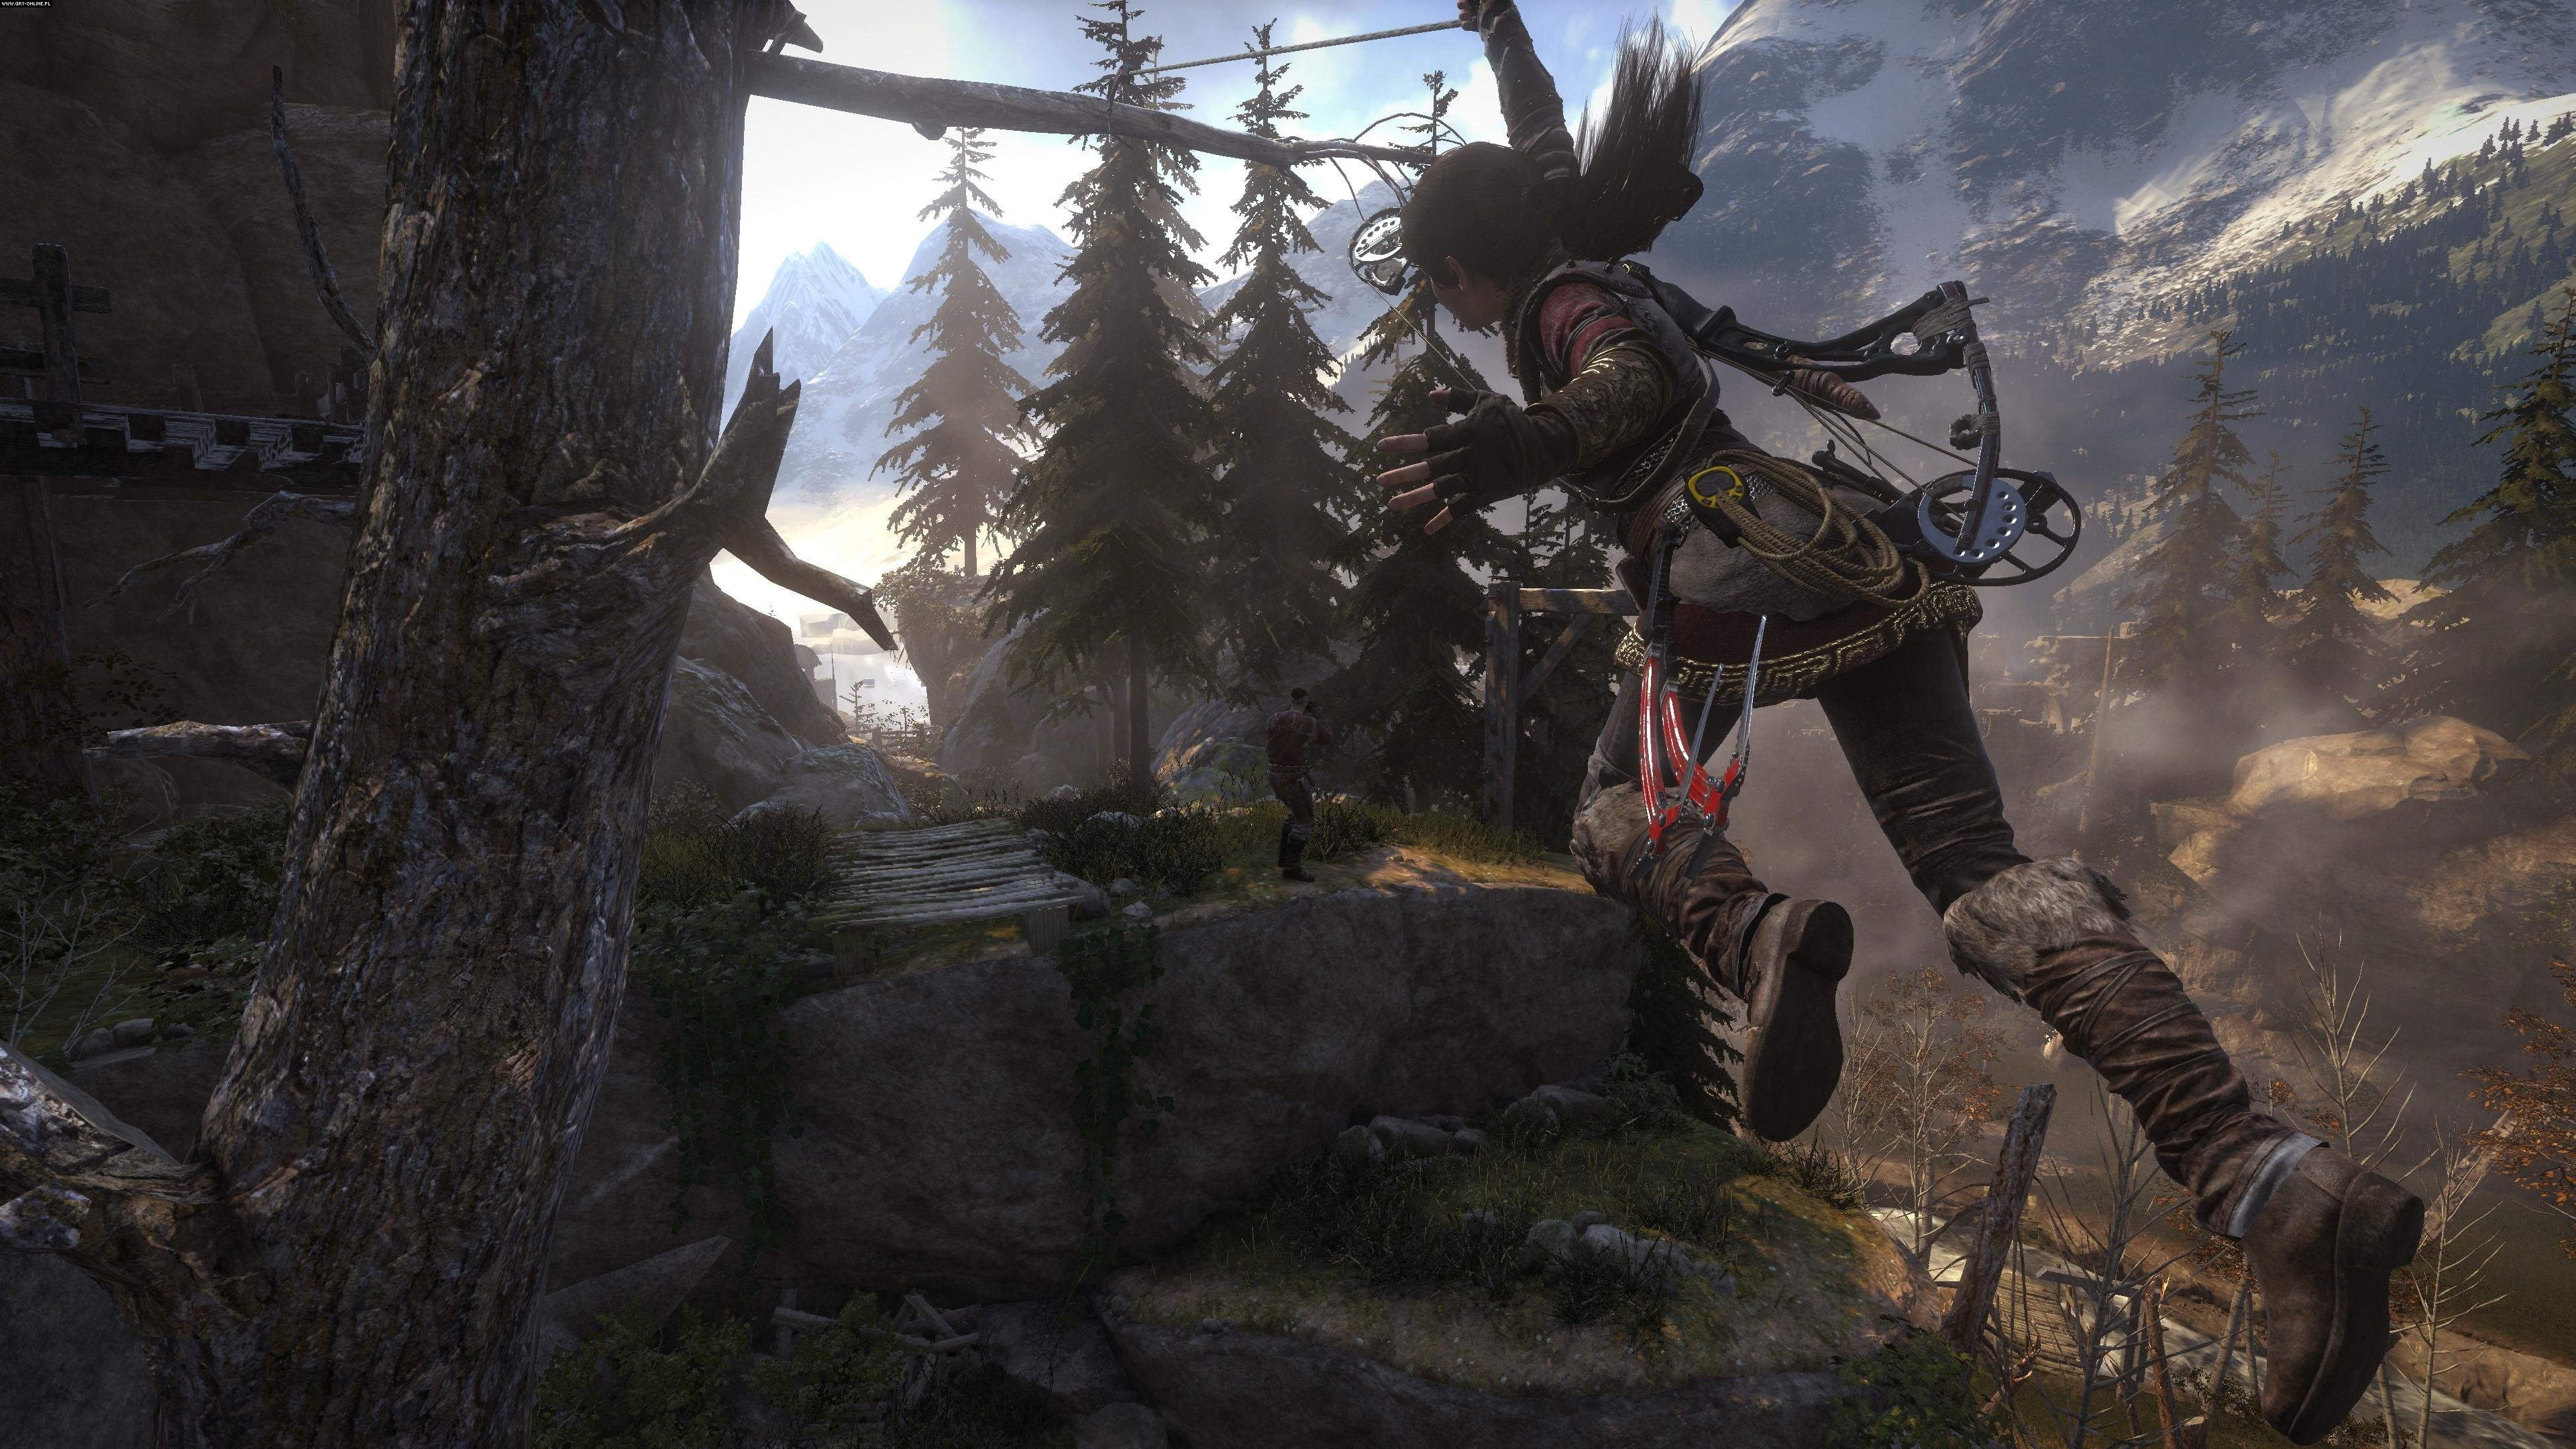 Rise of the Tomb Raider PC Games Image 7/126, Crystal Dynamics, Square-Enix / Eidos